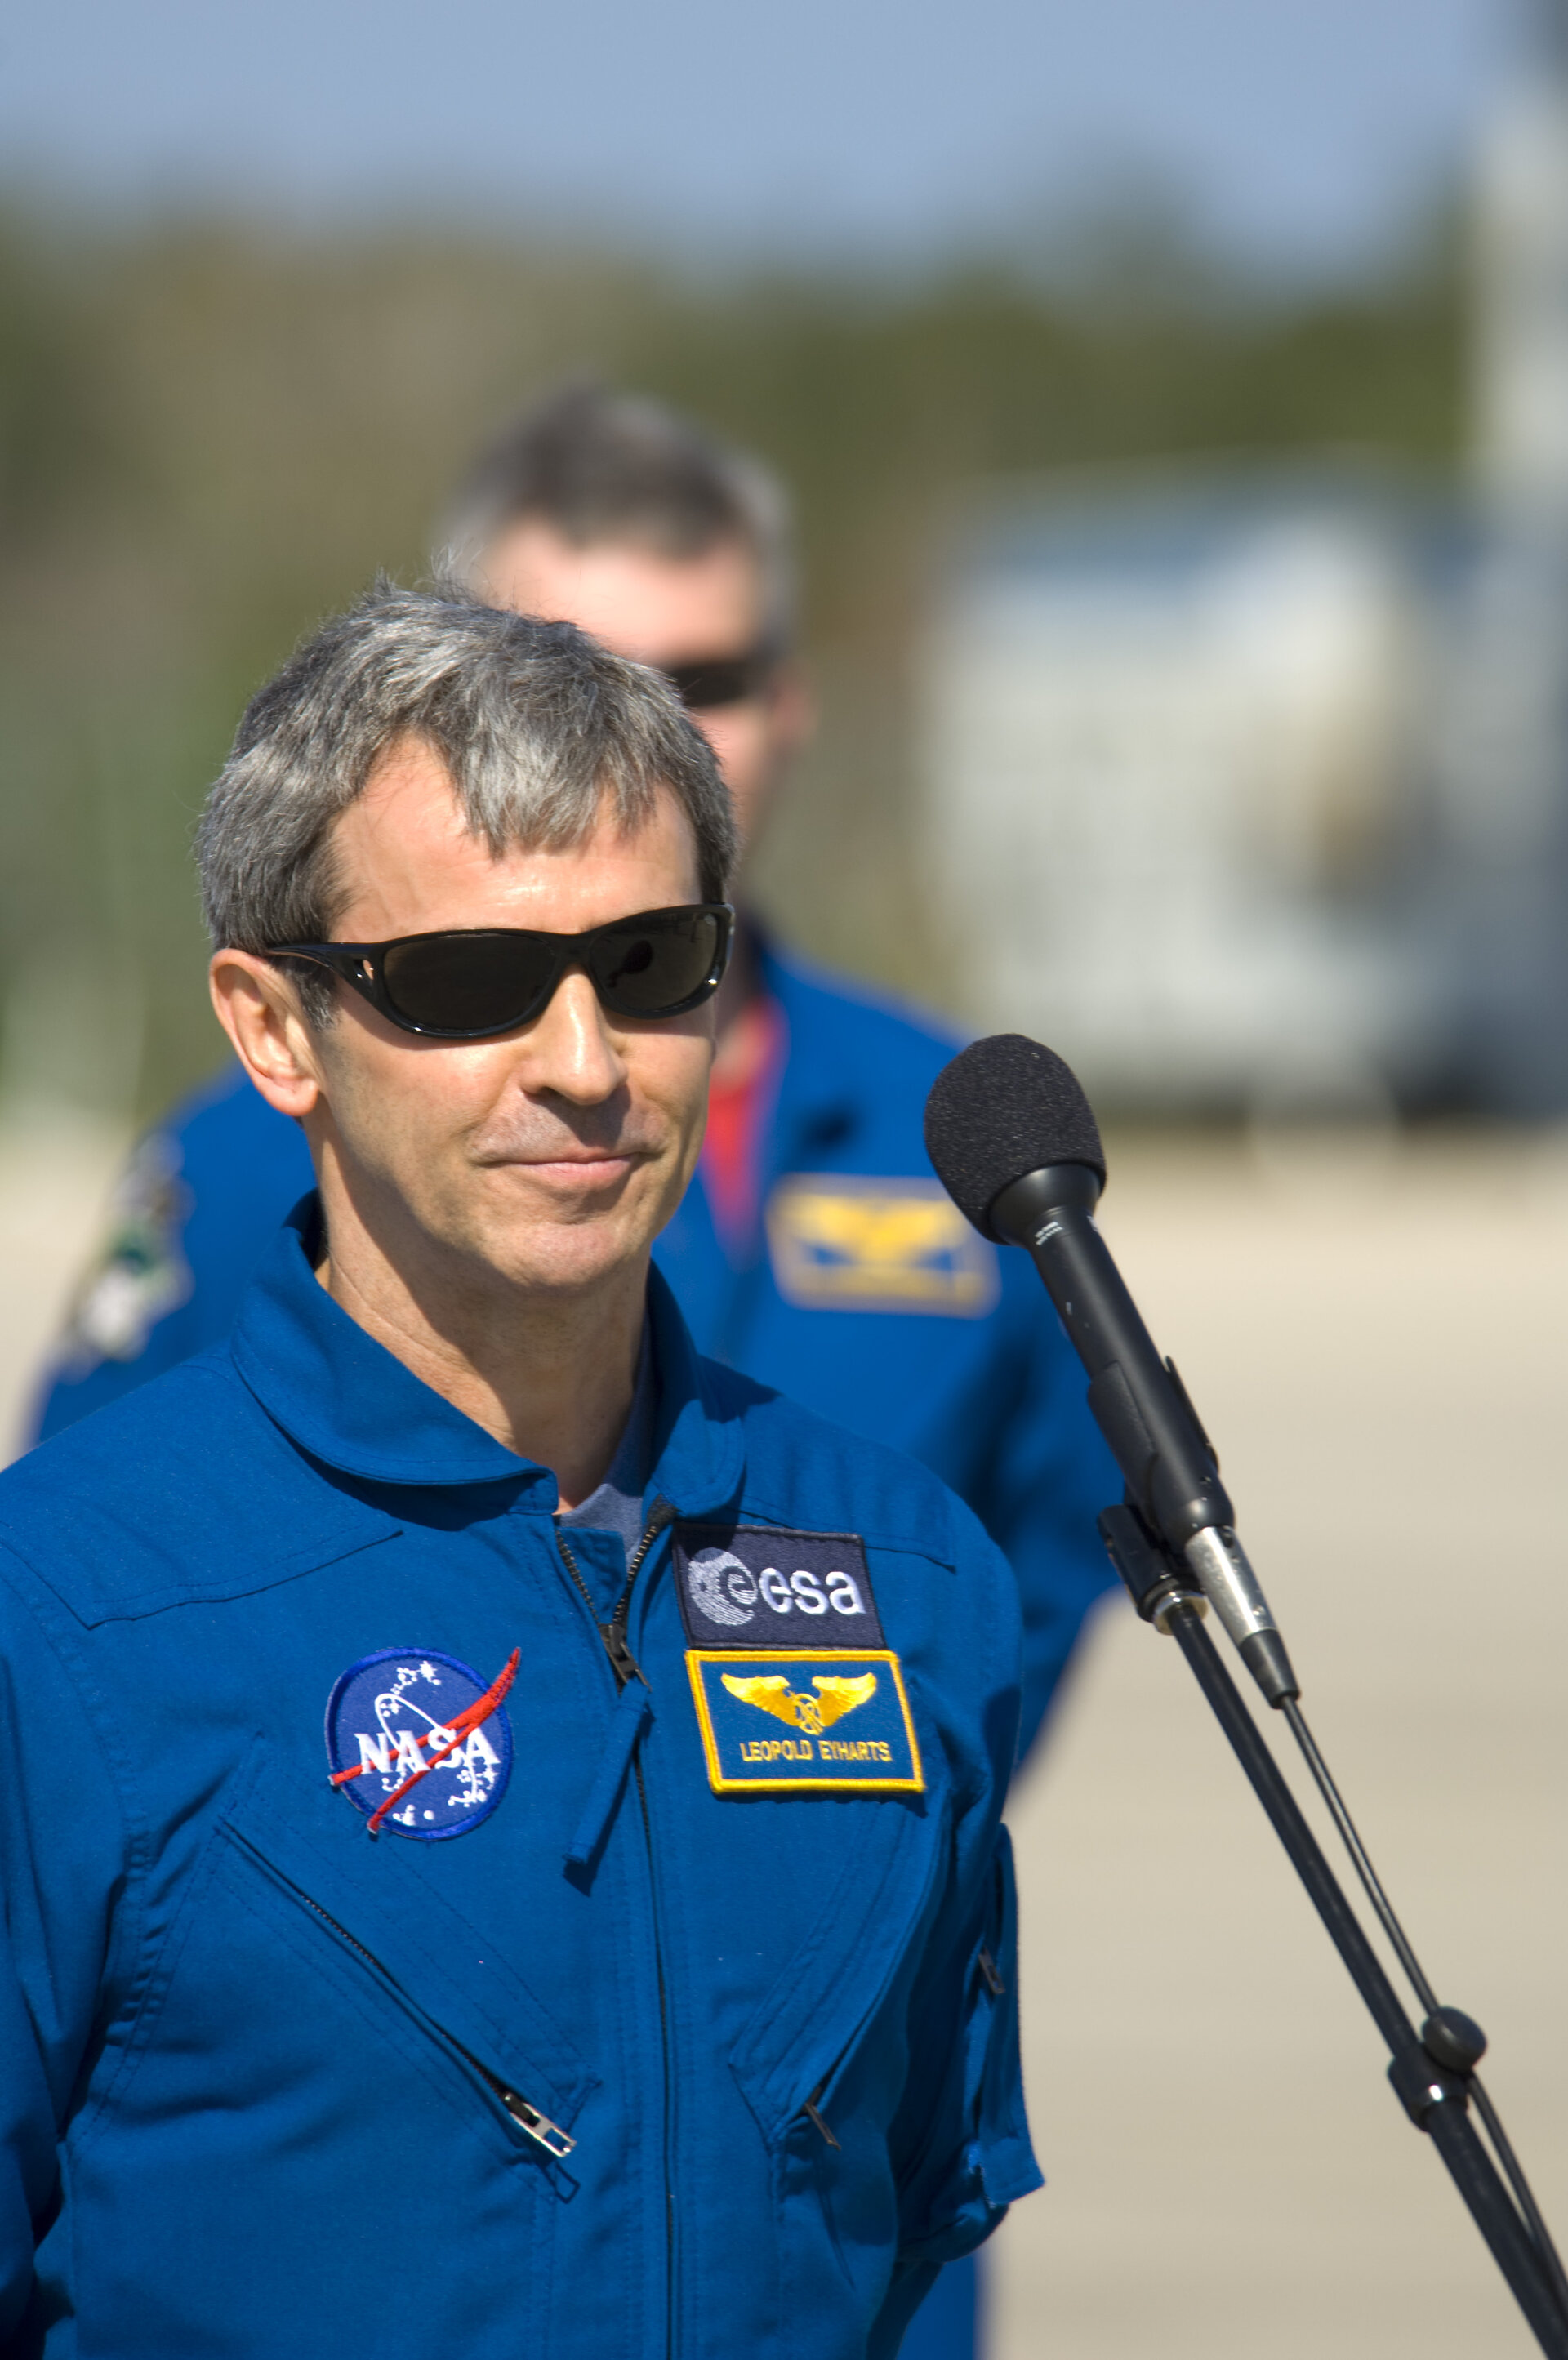 Leopold Eyharts gives a brief speech after arriving at NASA's Kennedy Space Center ahead of the STS-122 mission